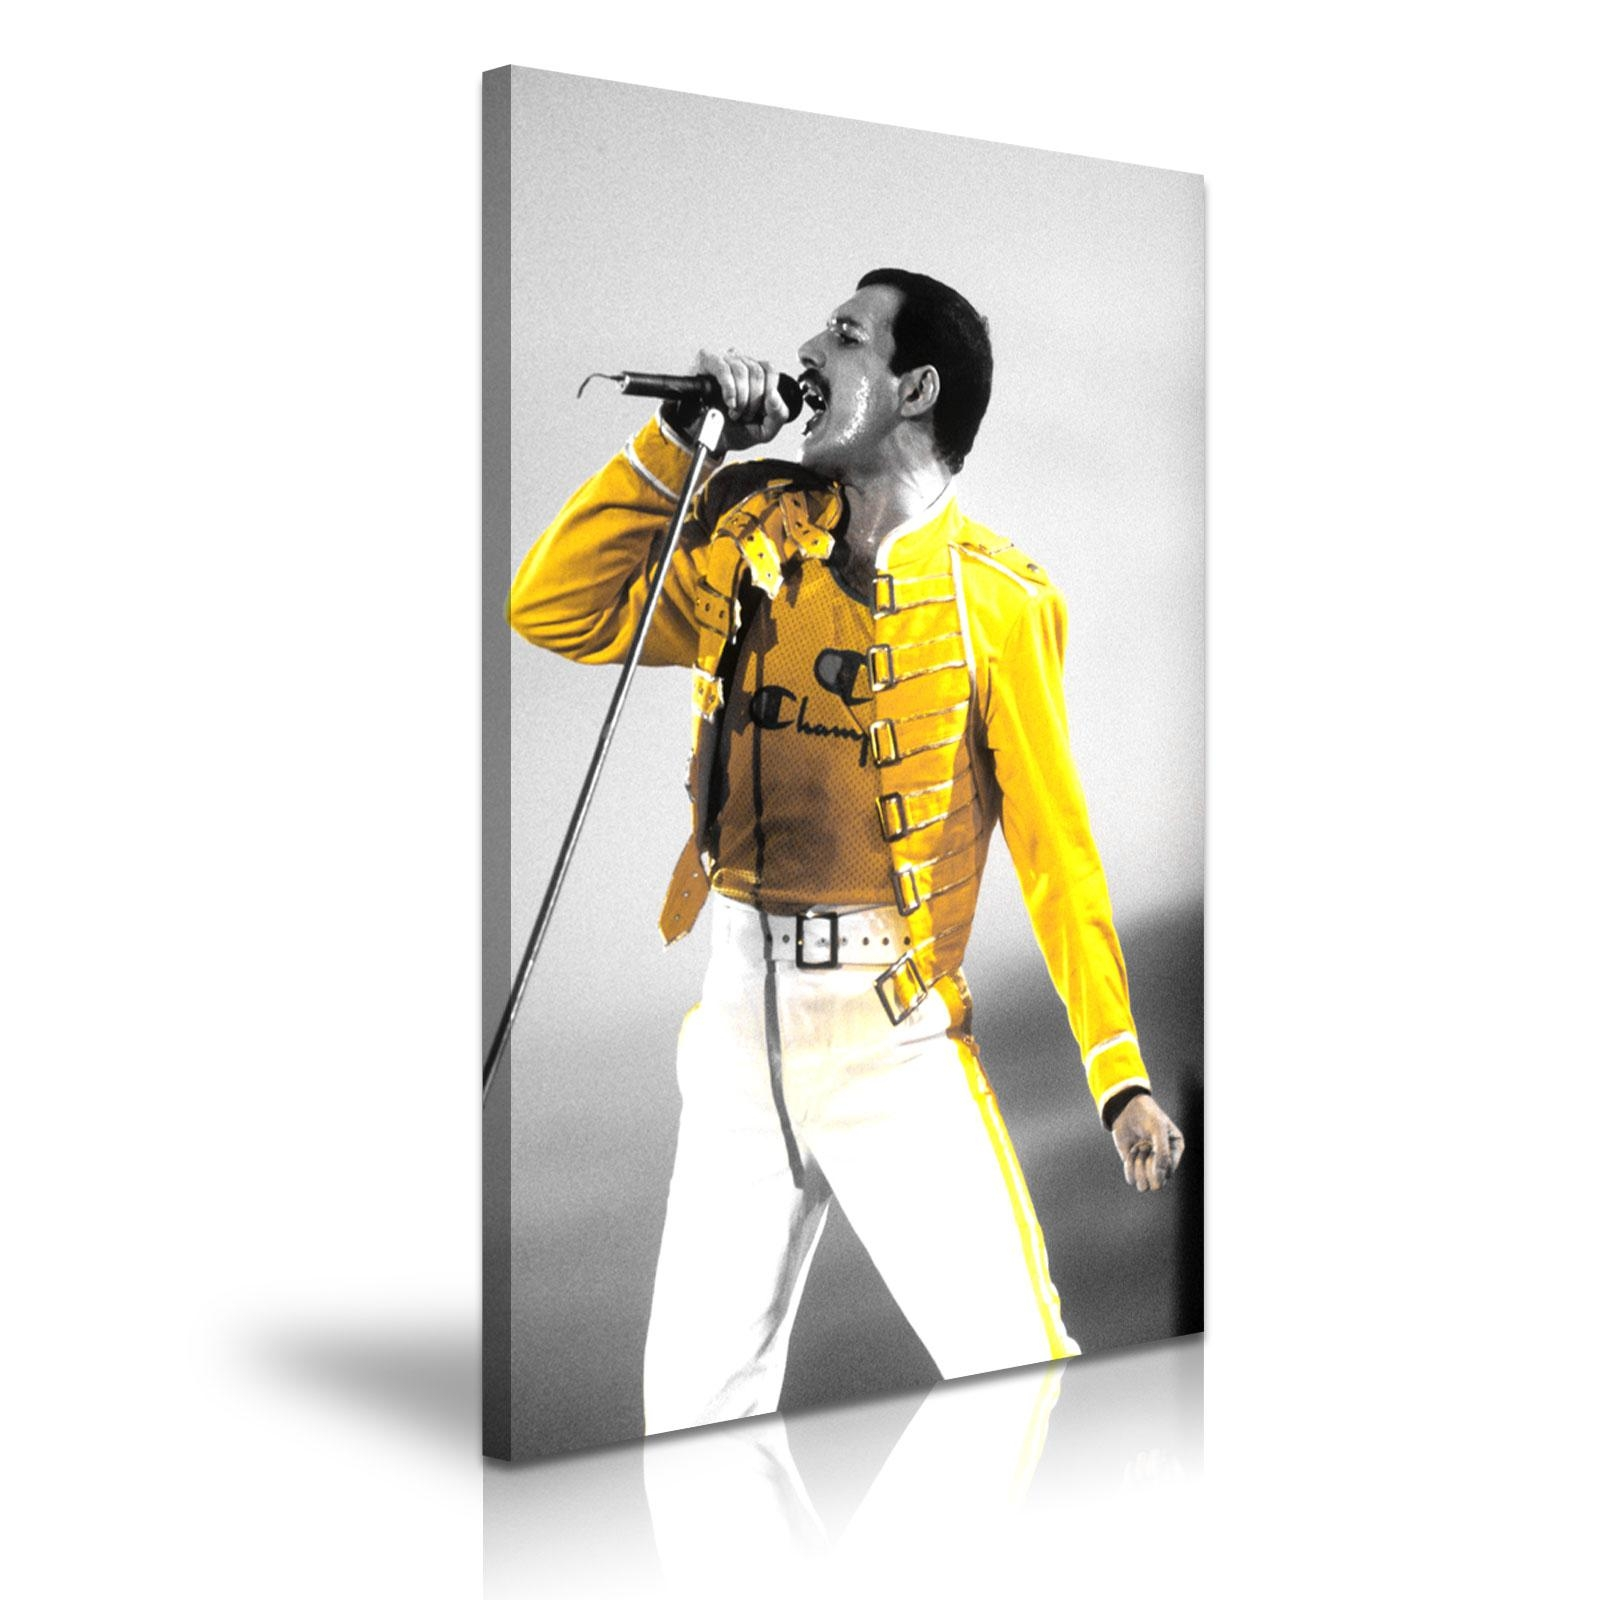 Music & Dance Freddie Mercury Queen Canvas Framed Print Wall Art With Regard To Freddie Mercury Wall Art (Image 13 of 20)